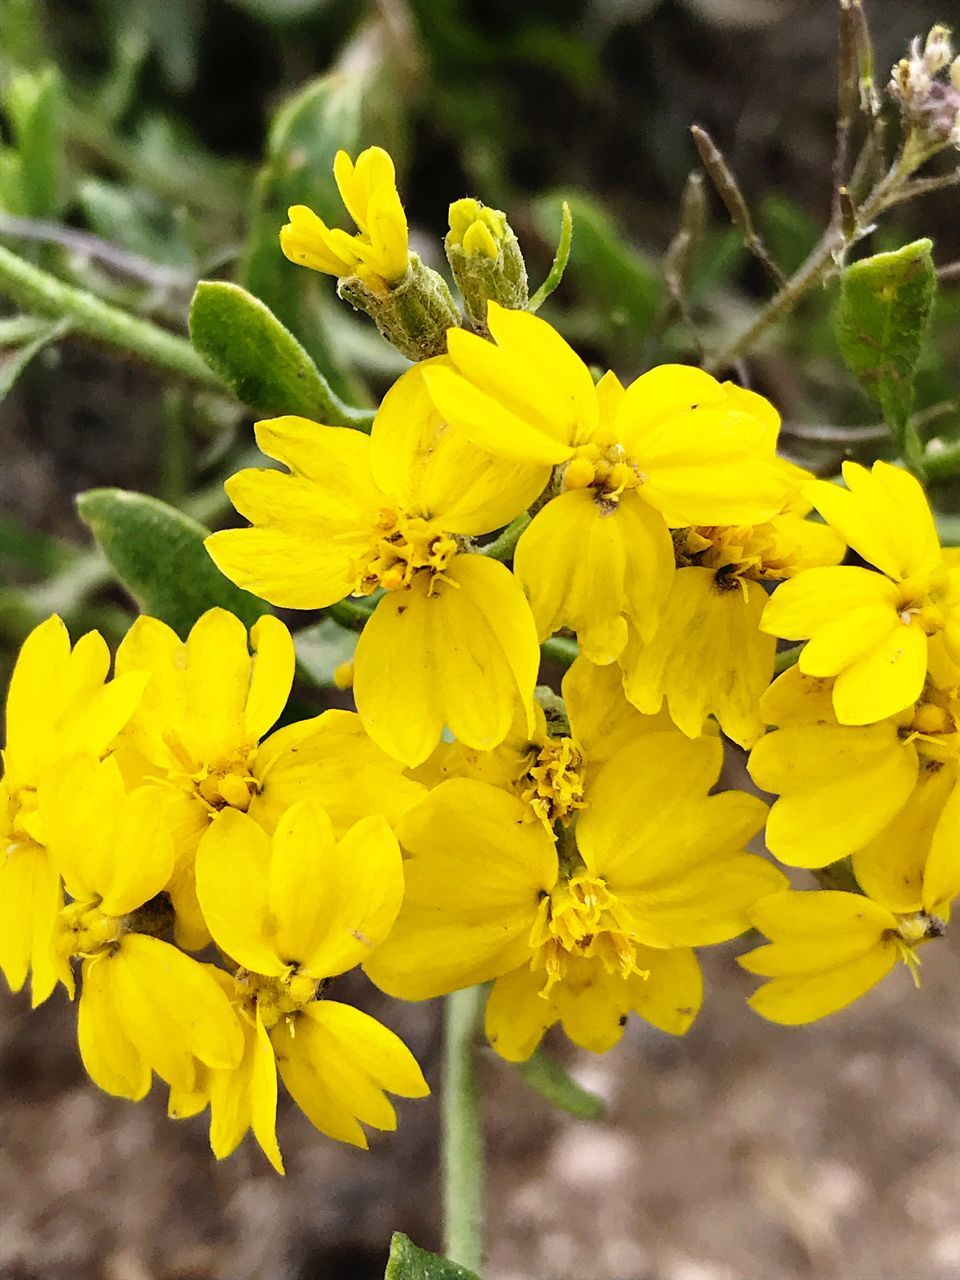 flower, yellow, petal, fragility, growth, beauty in nature, plant, nature, freshness, flower head, no people, outdoors, day, close-up, blooming, focus on foreground, animal themes